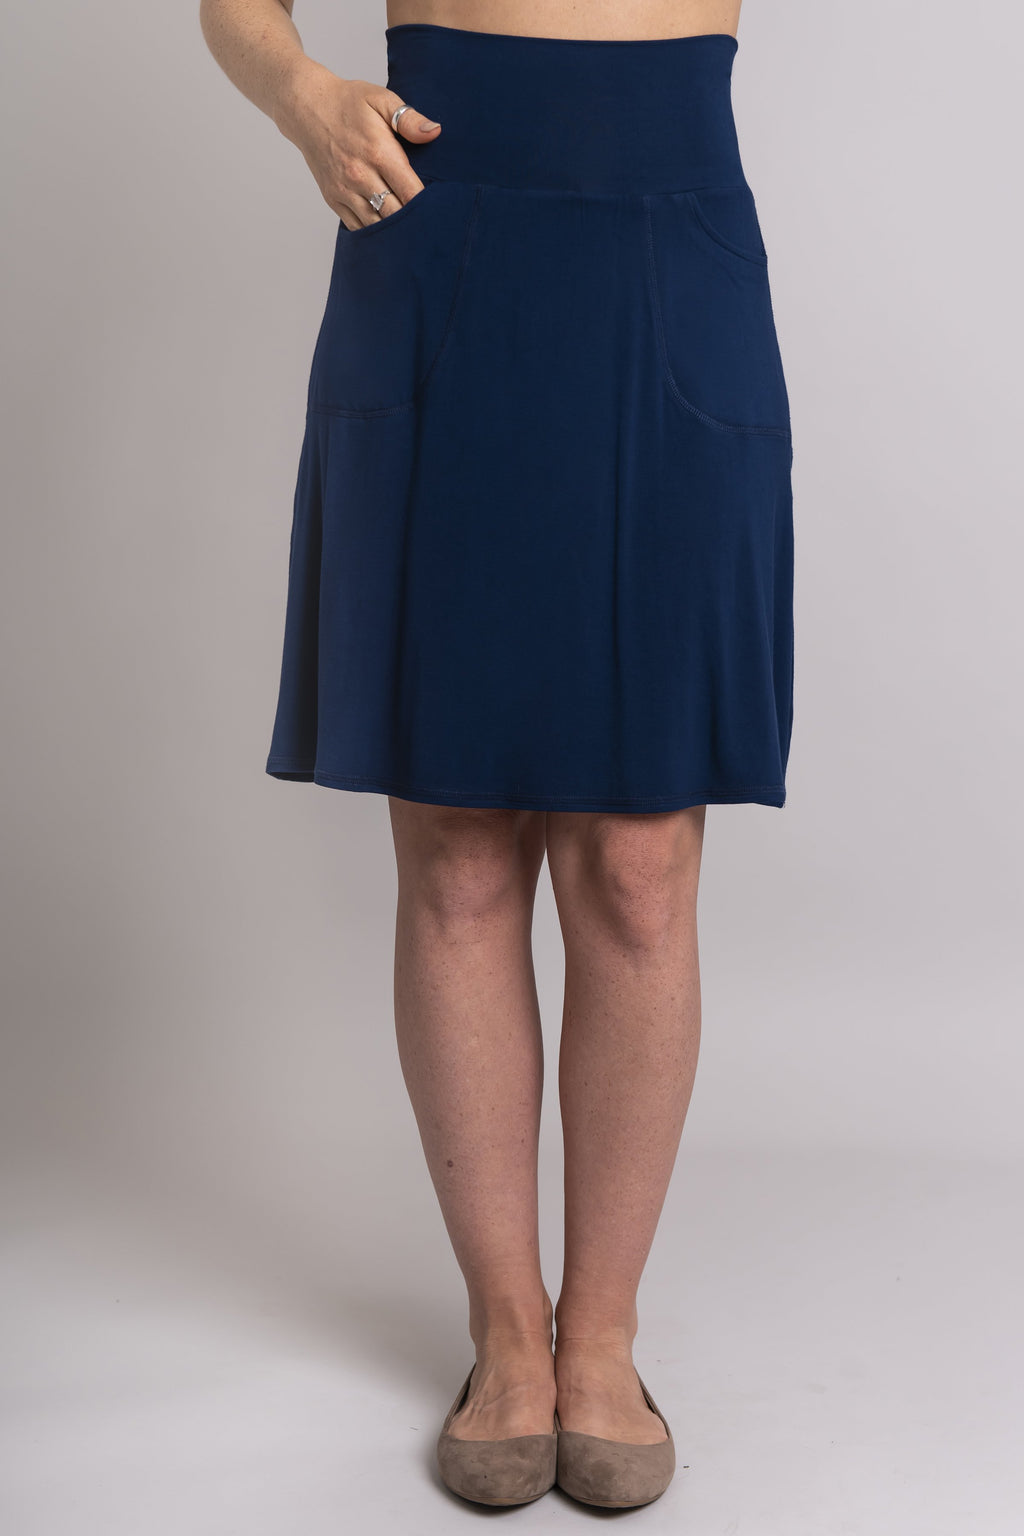 Magna Skort, Indigo - Blue Sky Clothing Co